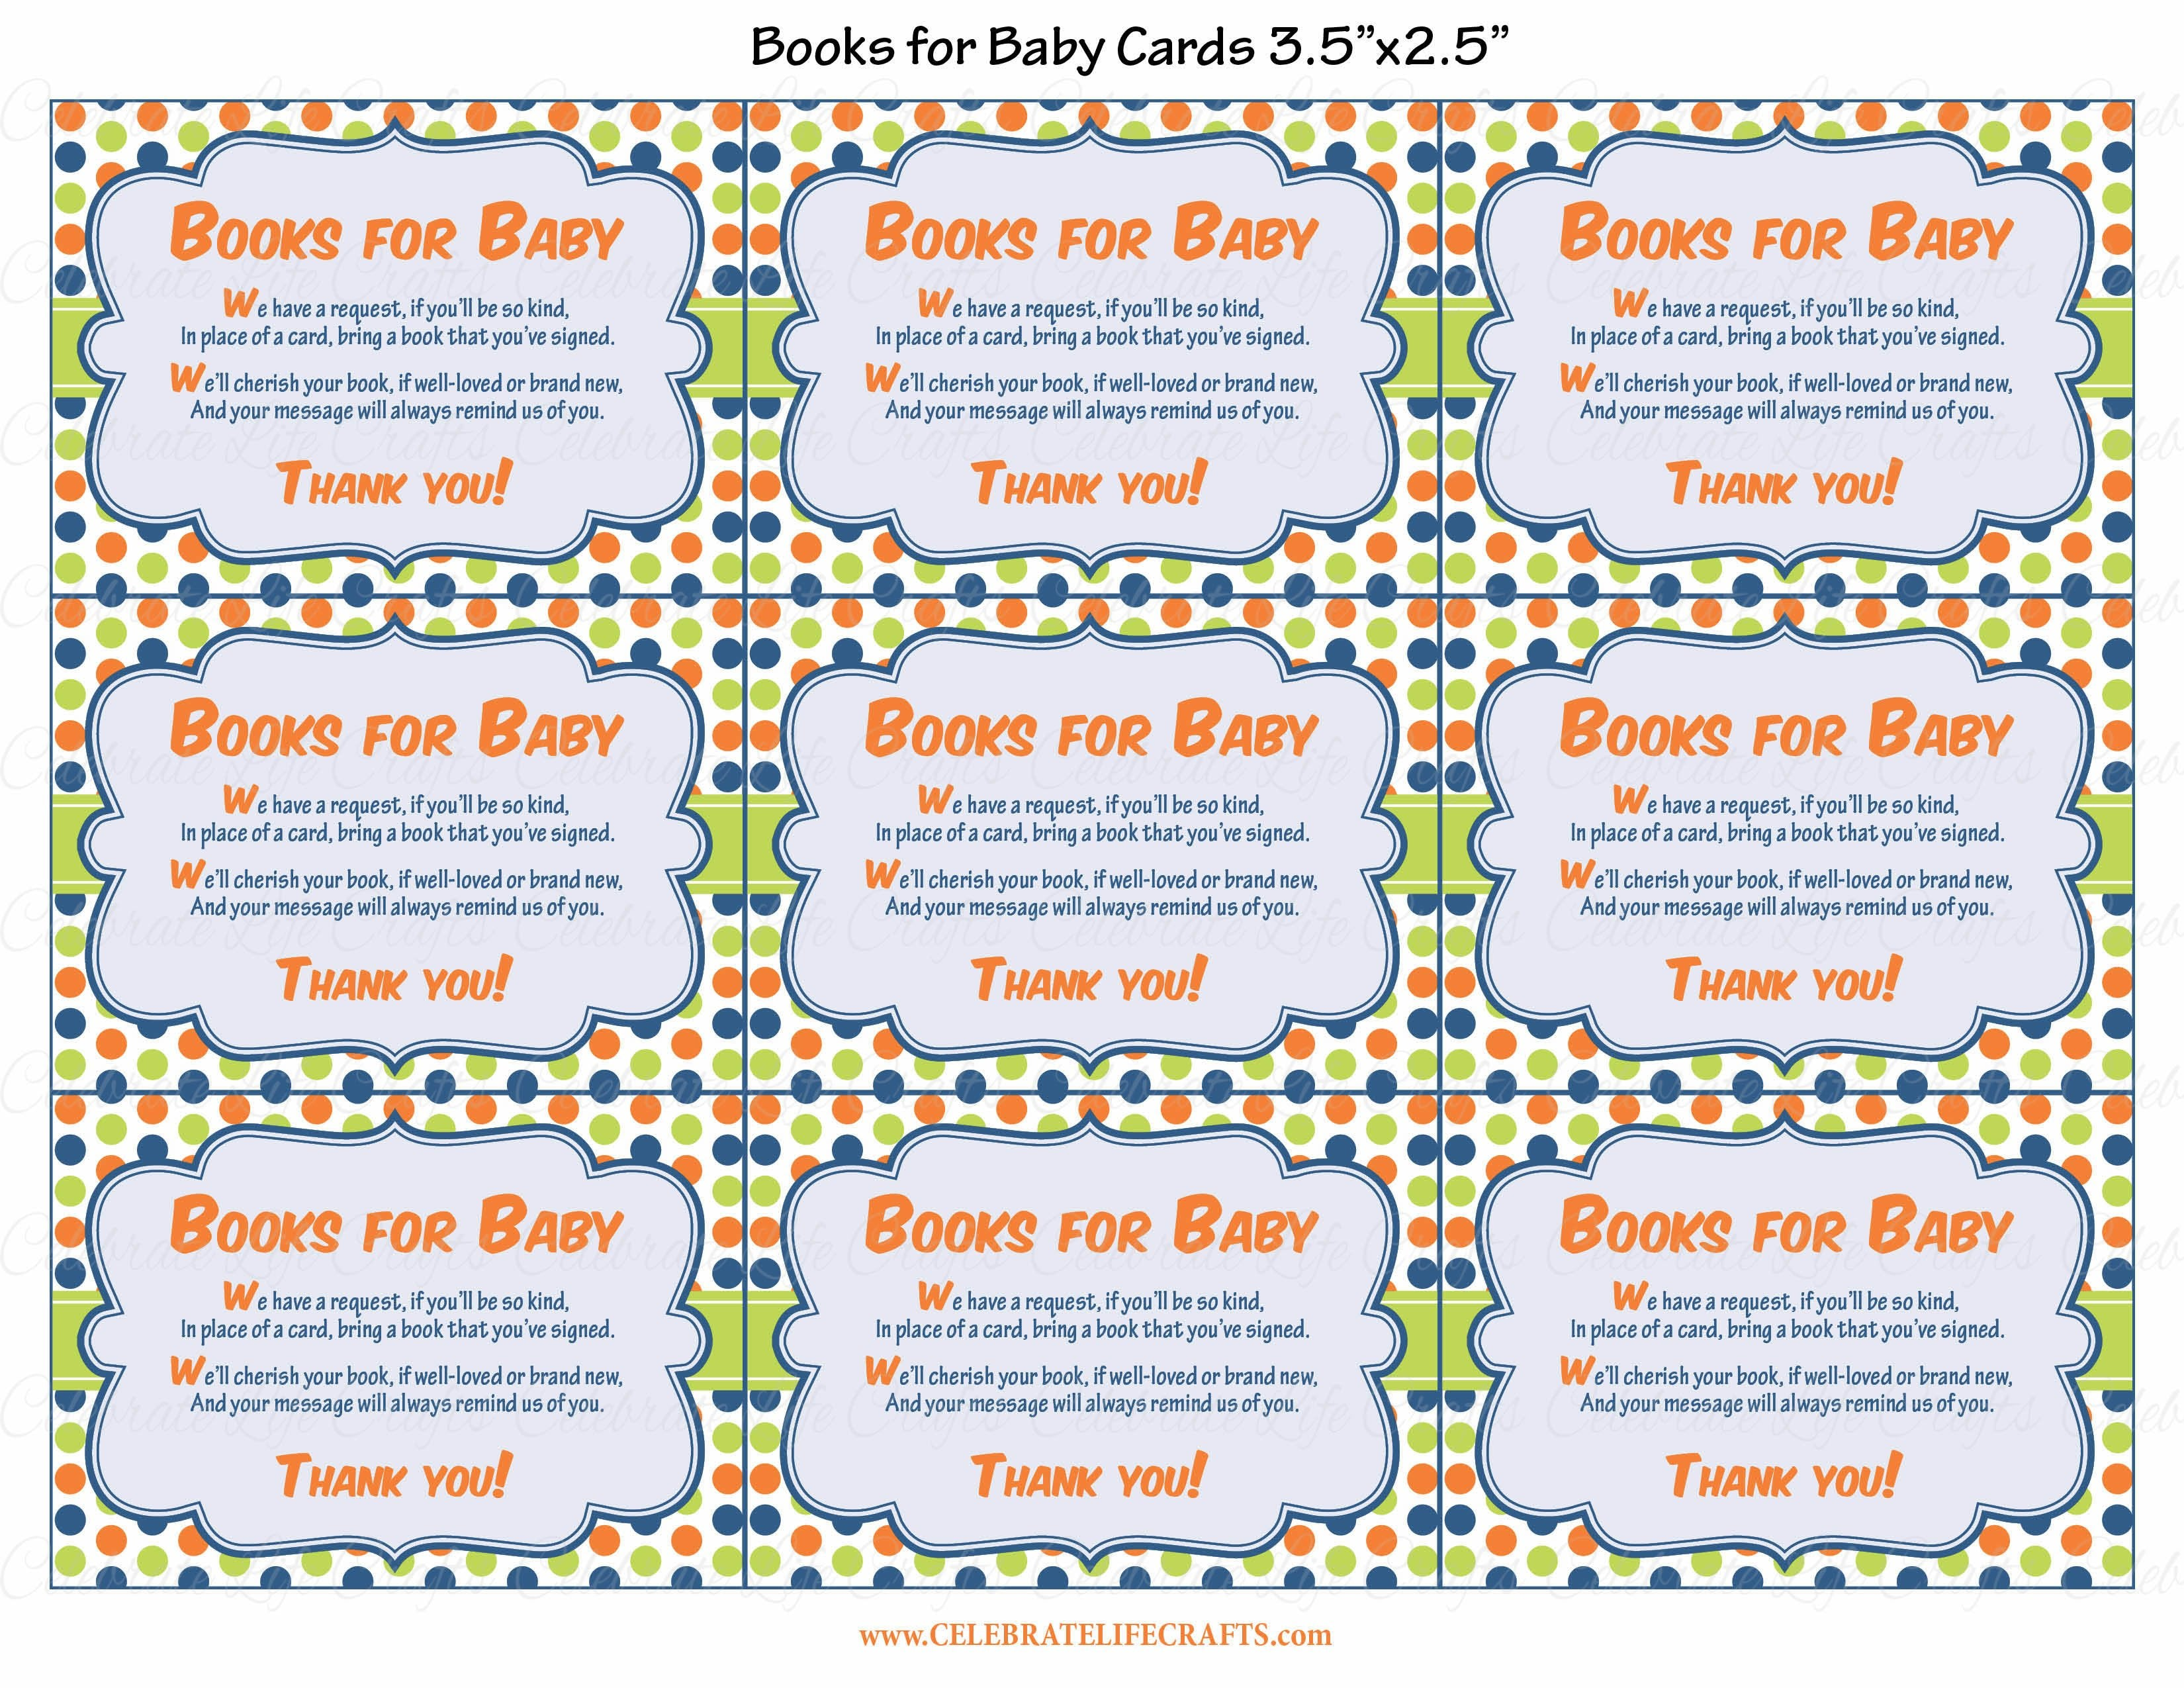 photo regarding Bring a Book Instead of a Card Printable called Textbooks for Youngster Playing cards - PRINTABLE Obtain - Dinosaur Boy or girl Shower Invitation Inserts - B38001